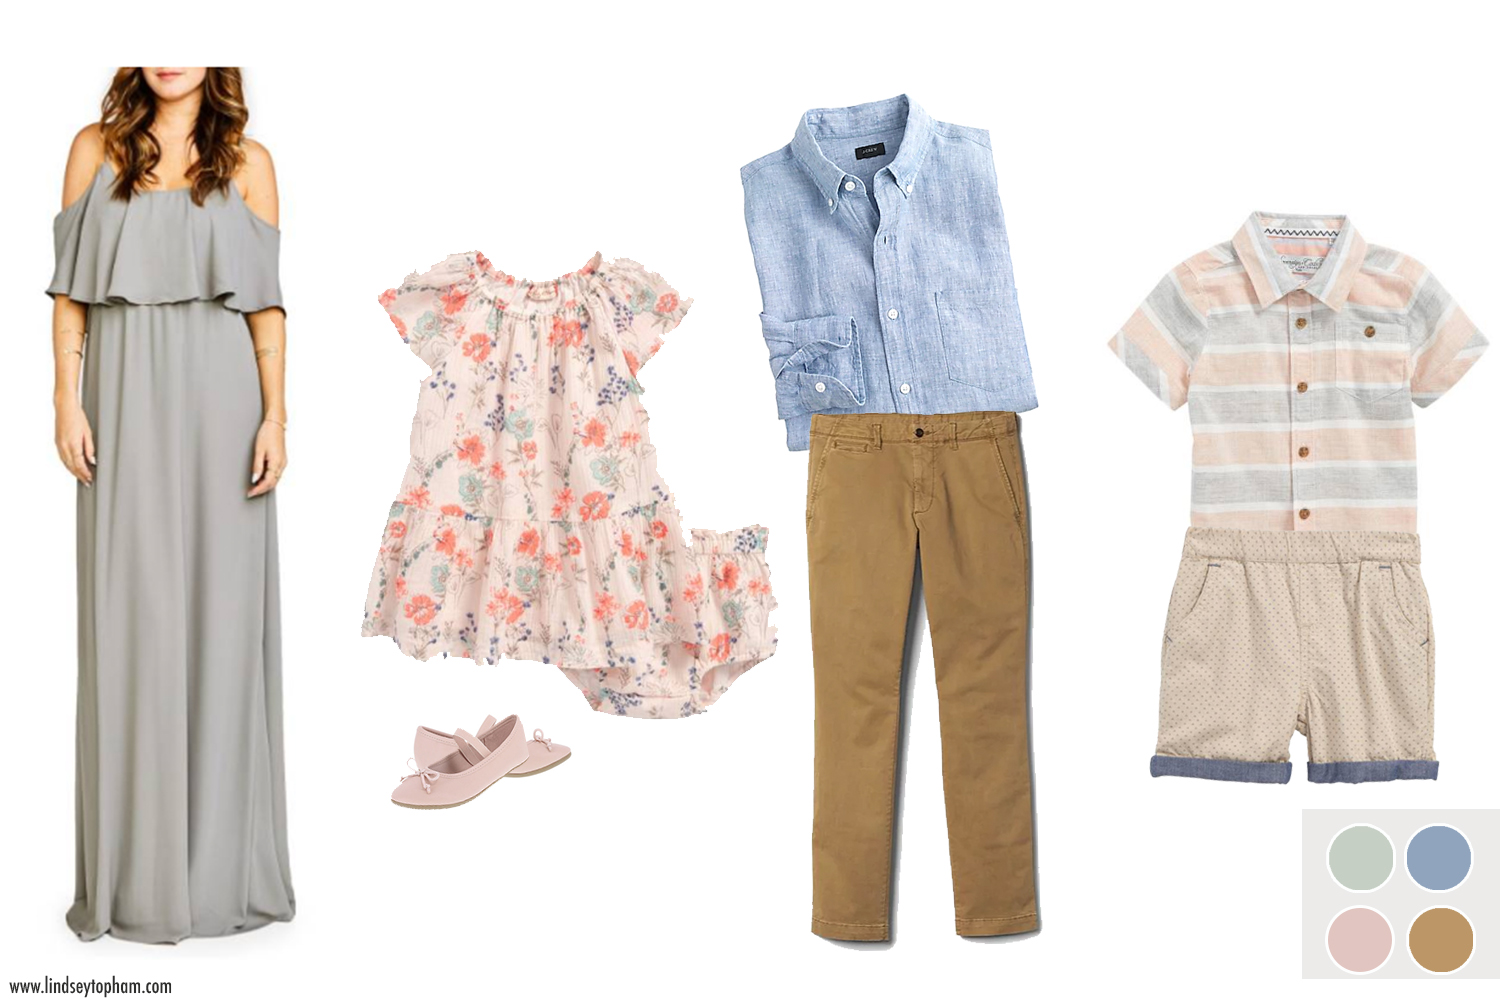 women's dress  |  girl's dress  |  girl's shoes  |  men's pant  |  men's shirt  |  boy's shirt  |  boy's short